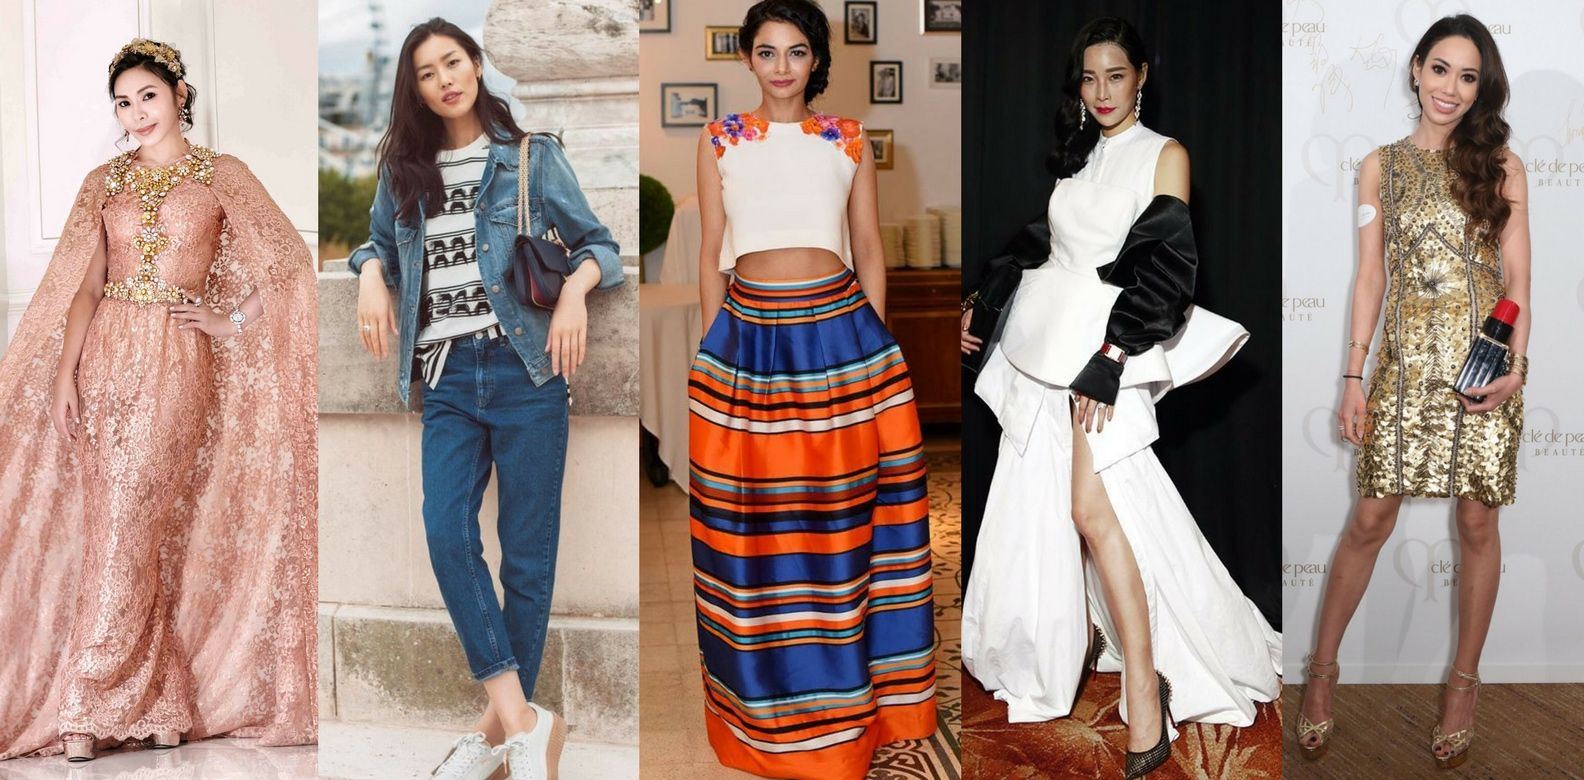 Asia's Most Stylish: 85 Fashion-Forward Women To Know